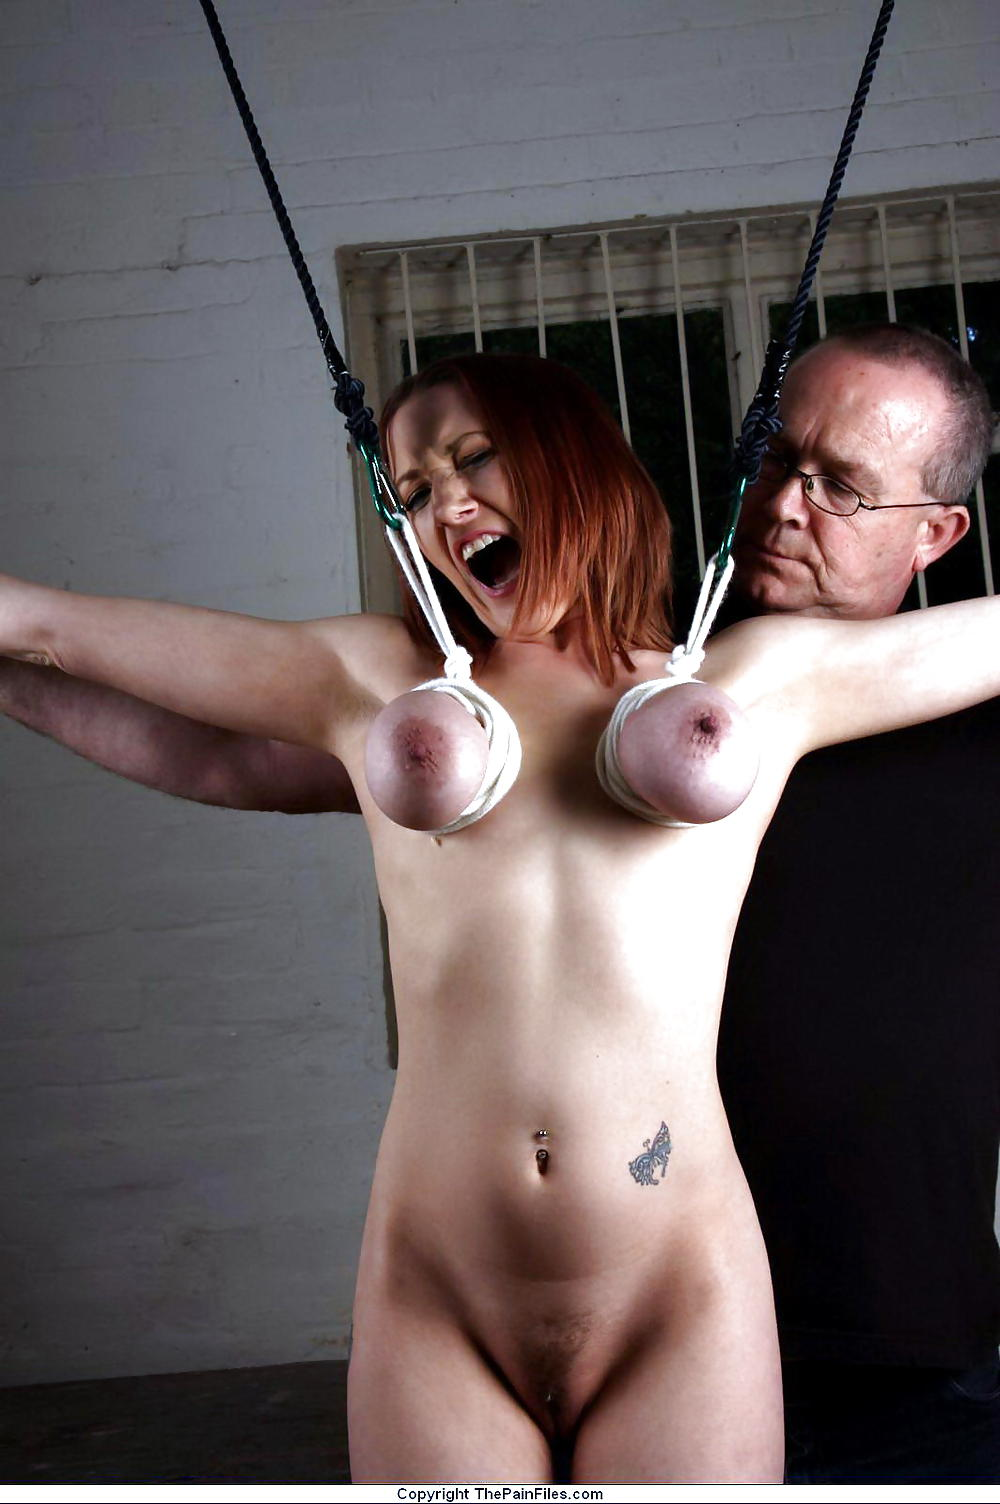 Chubby Blonde With Big Boobs Got Tied Up And Forced To Suck Dick While Kneeling